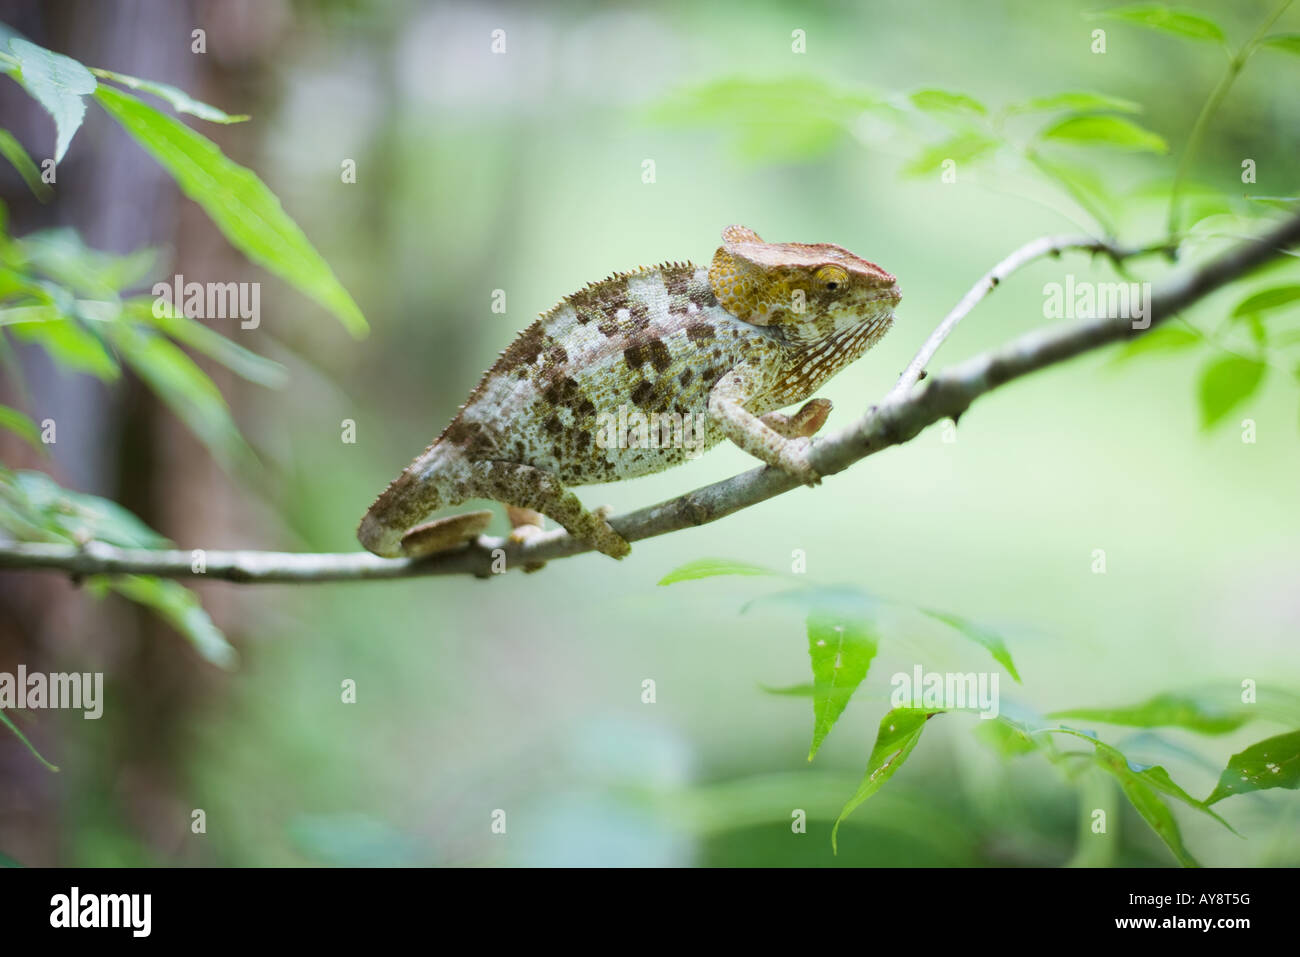 Chameleon resting on branch, side view - Stock Image